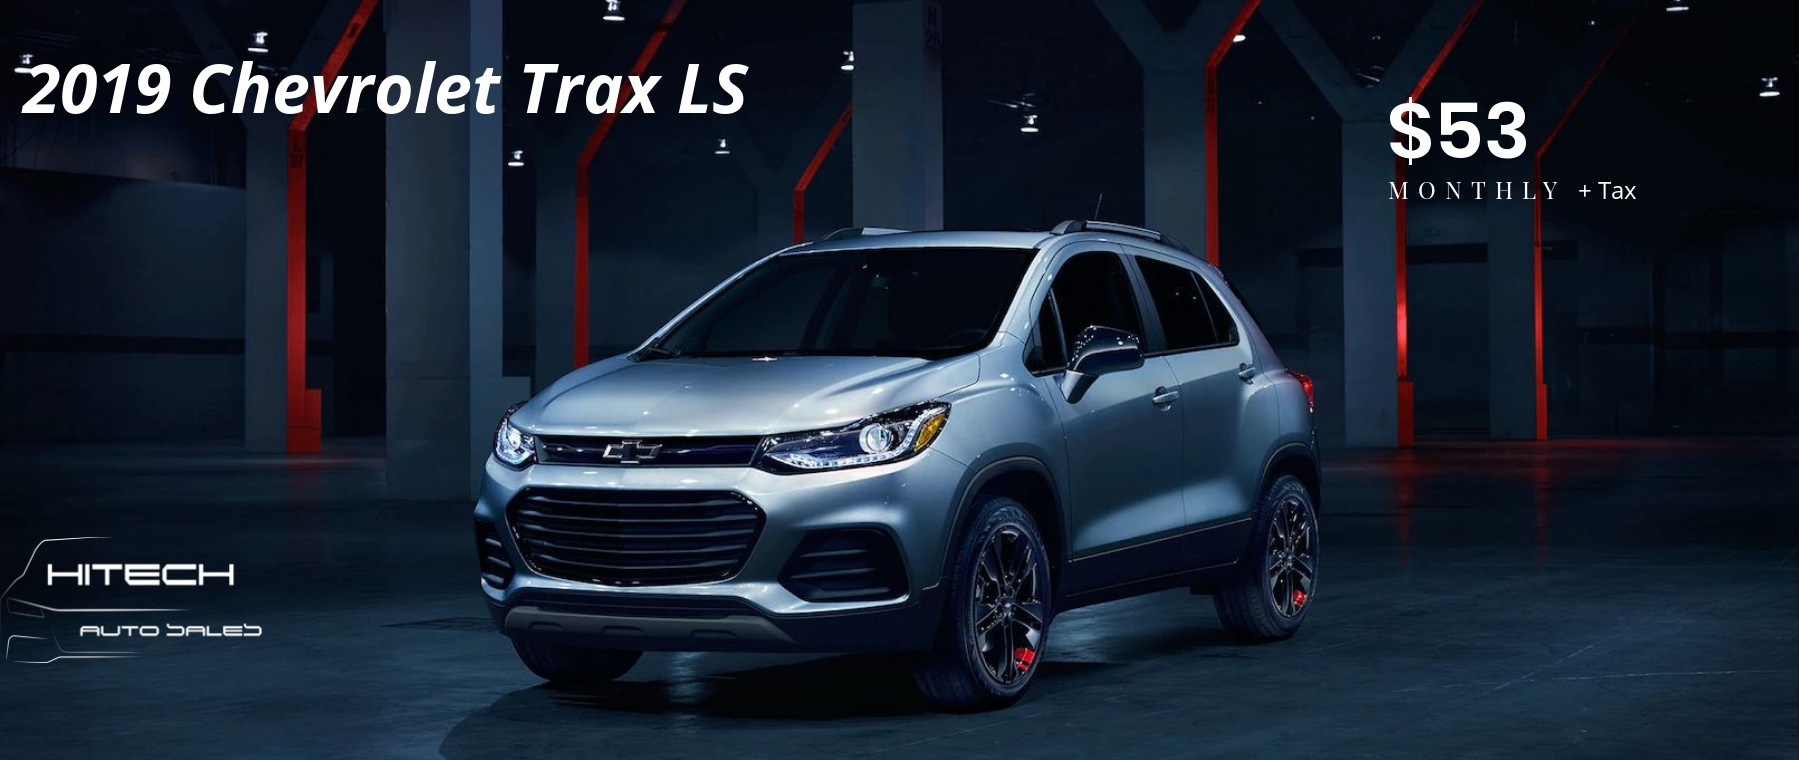 2019-chevy-Trax_website3